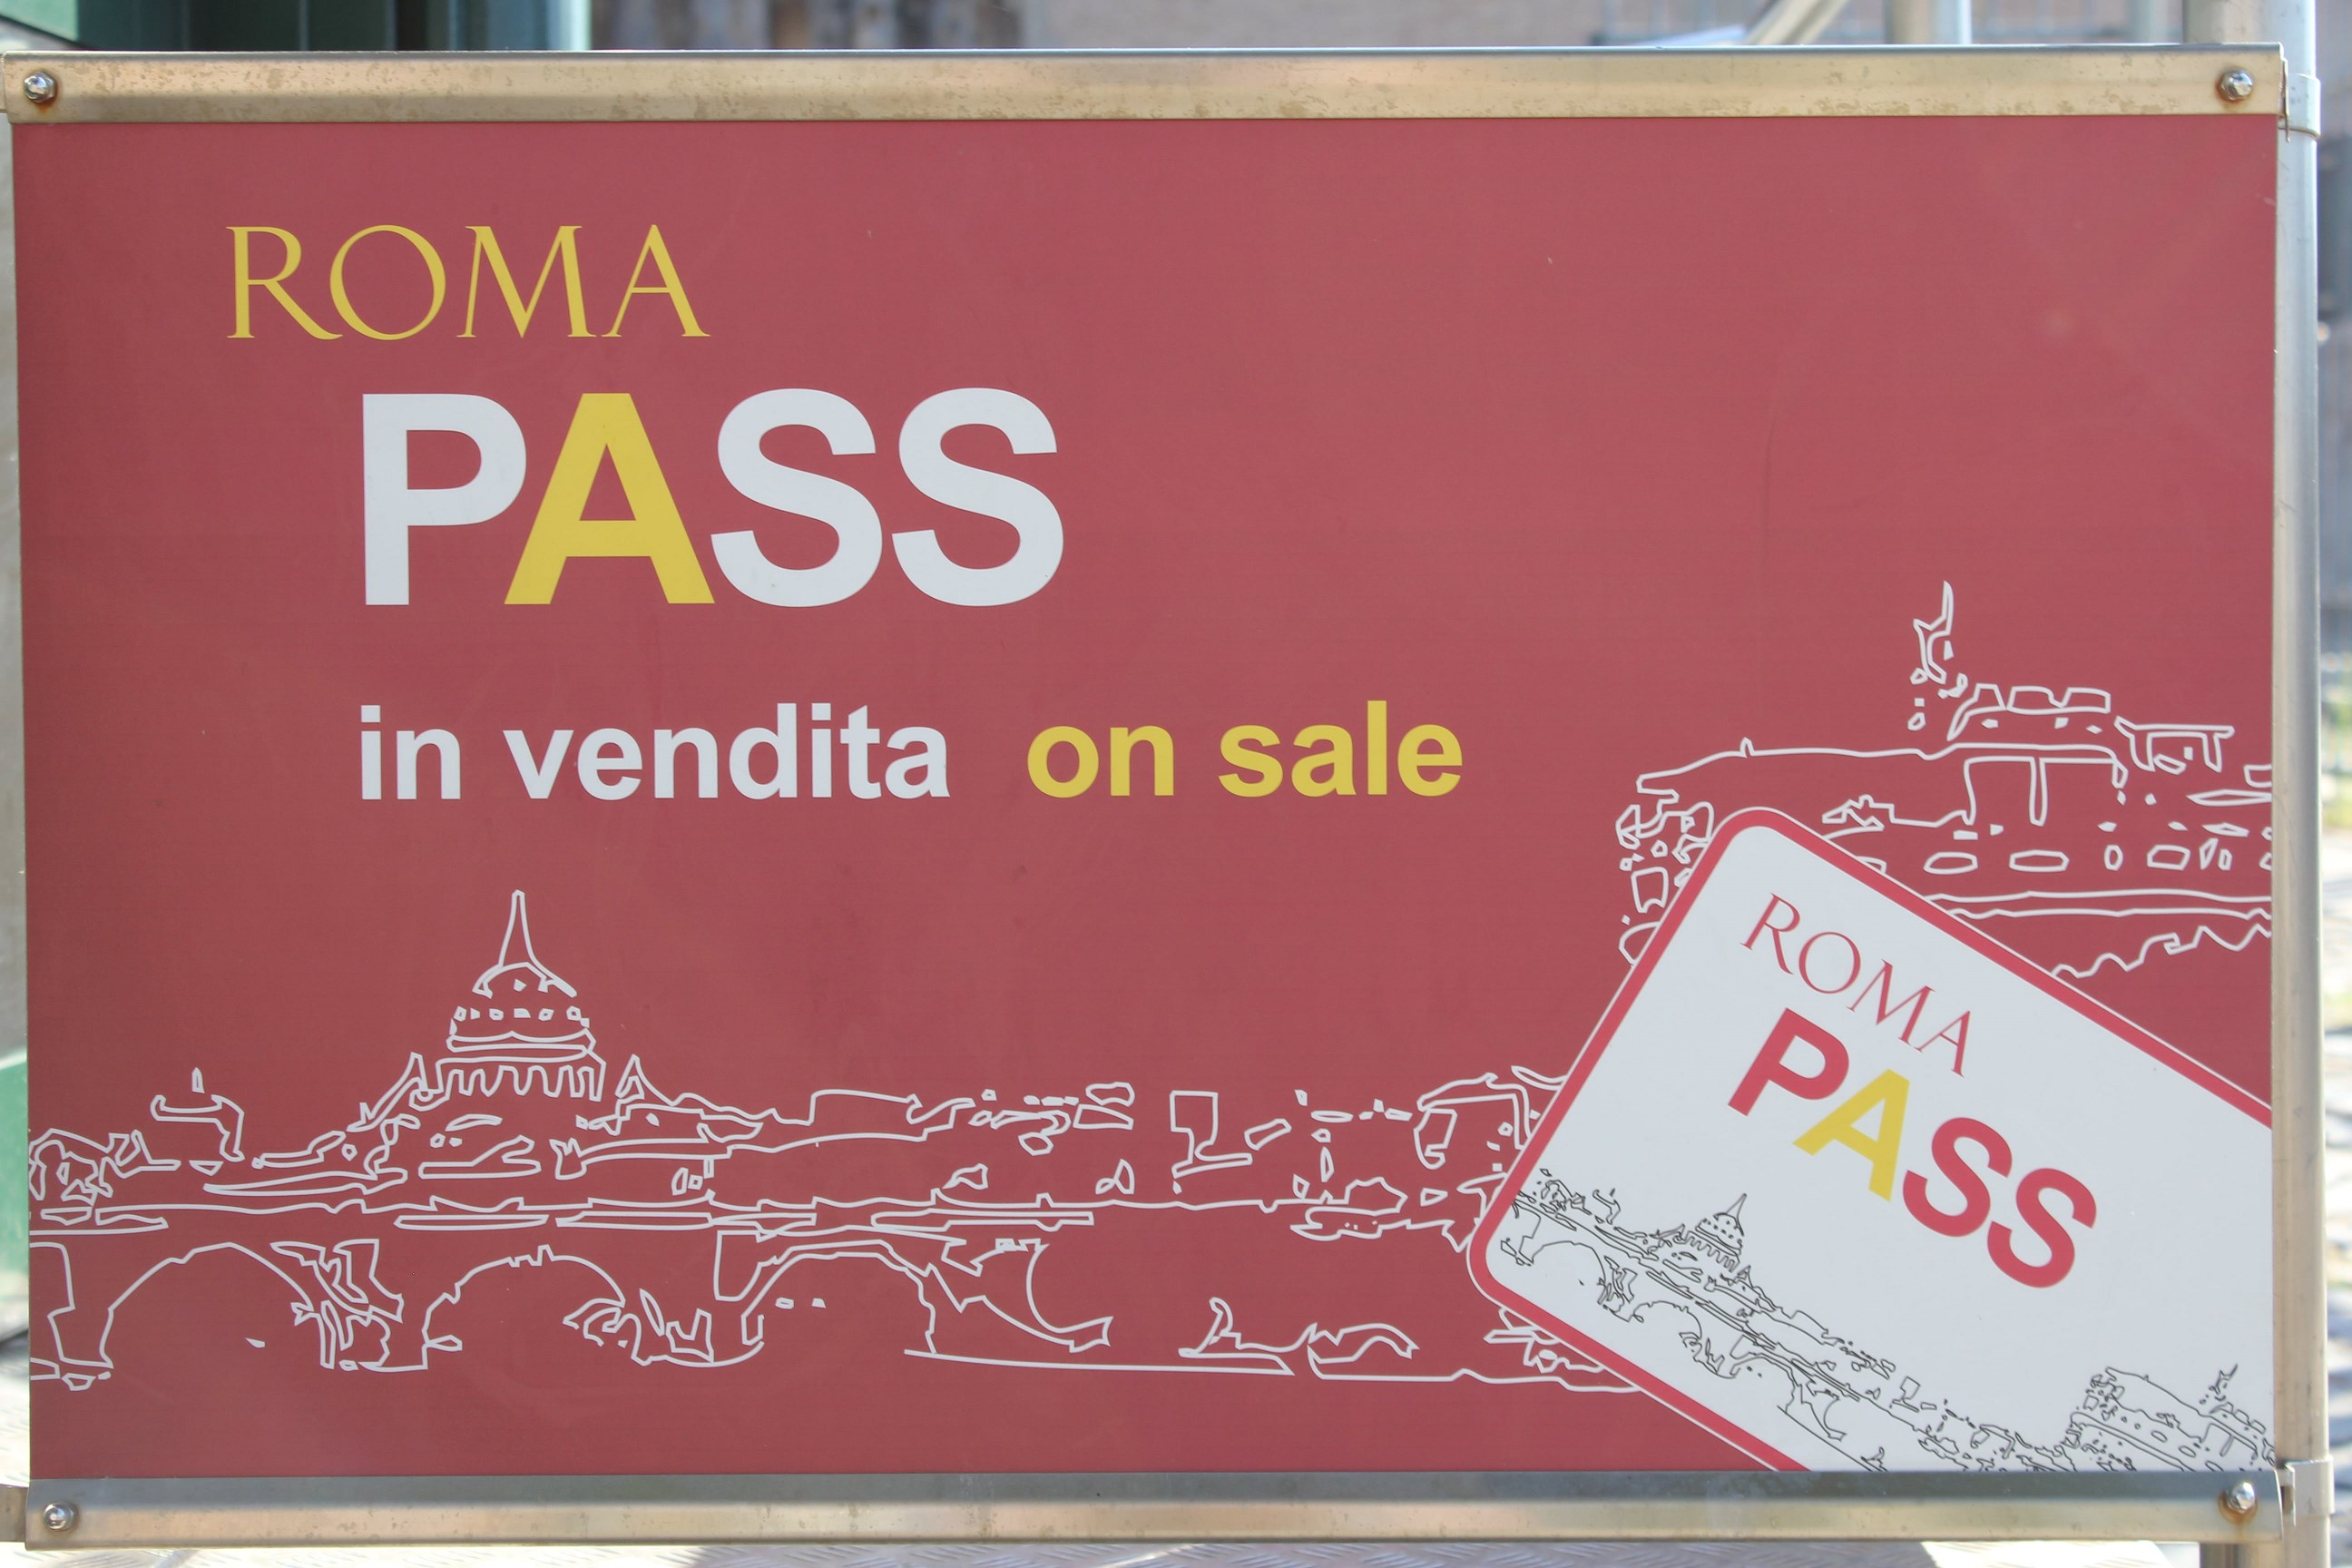 vatican museum tickets Roma pass rome